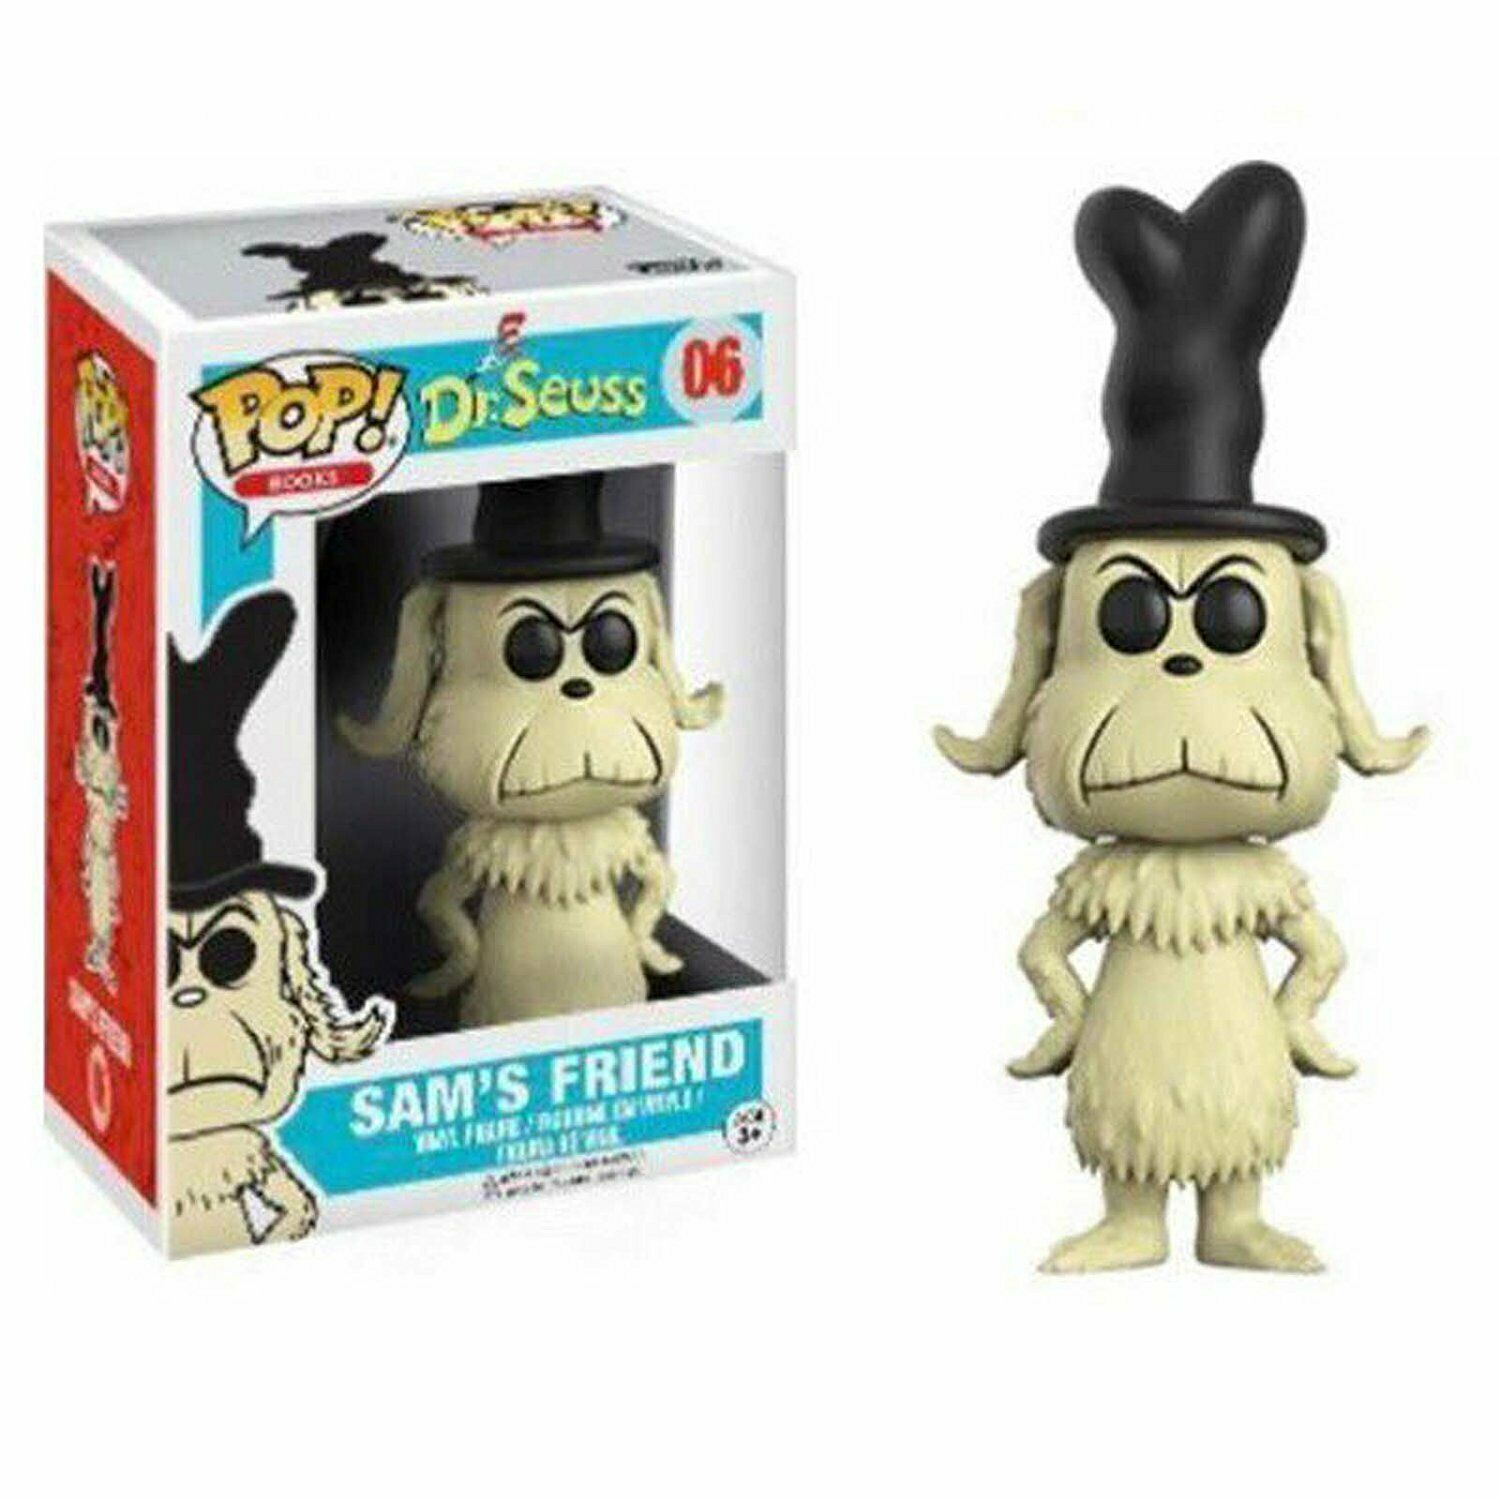 Funko Dr. Seuss POP! Books SAM'S FRIEND Vinyl Figure #06